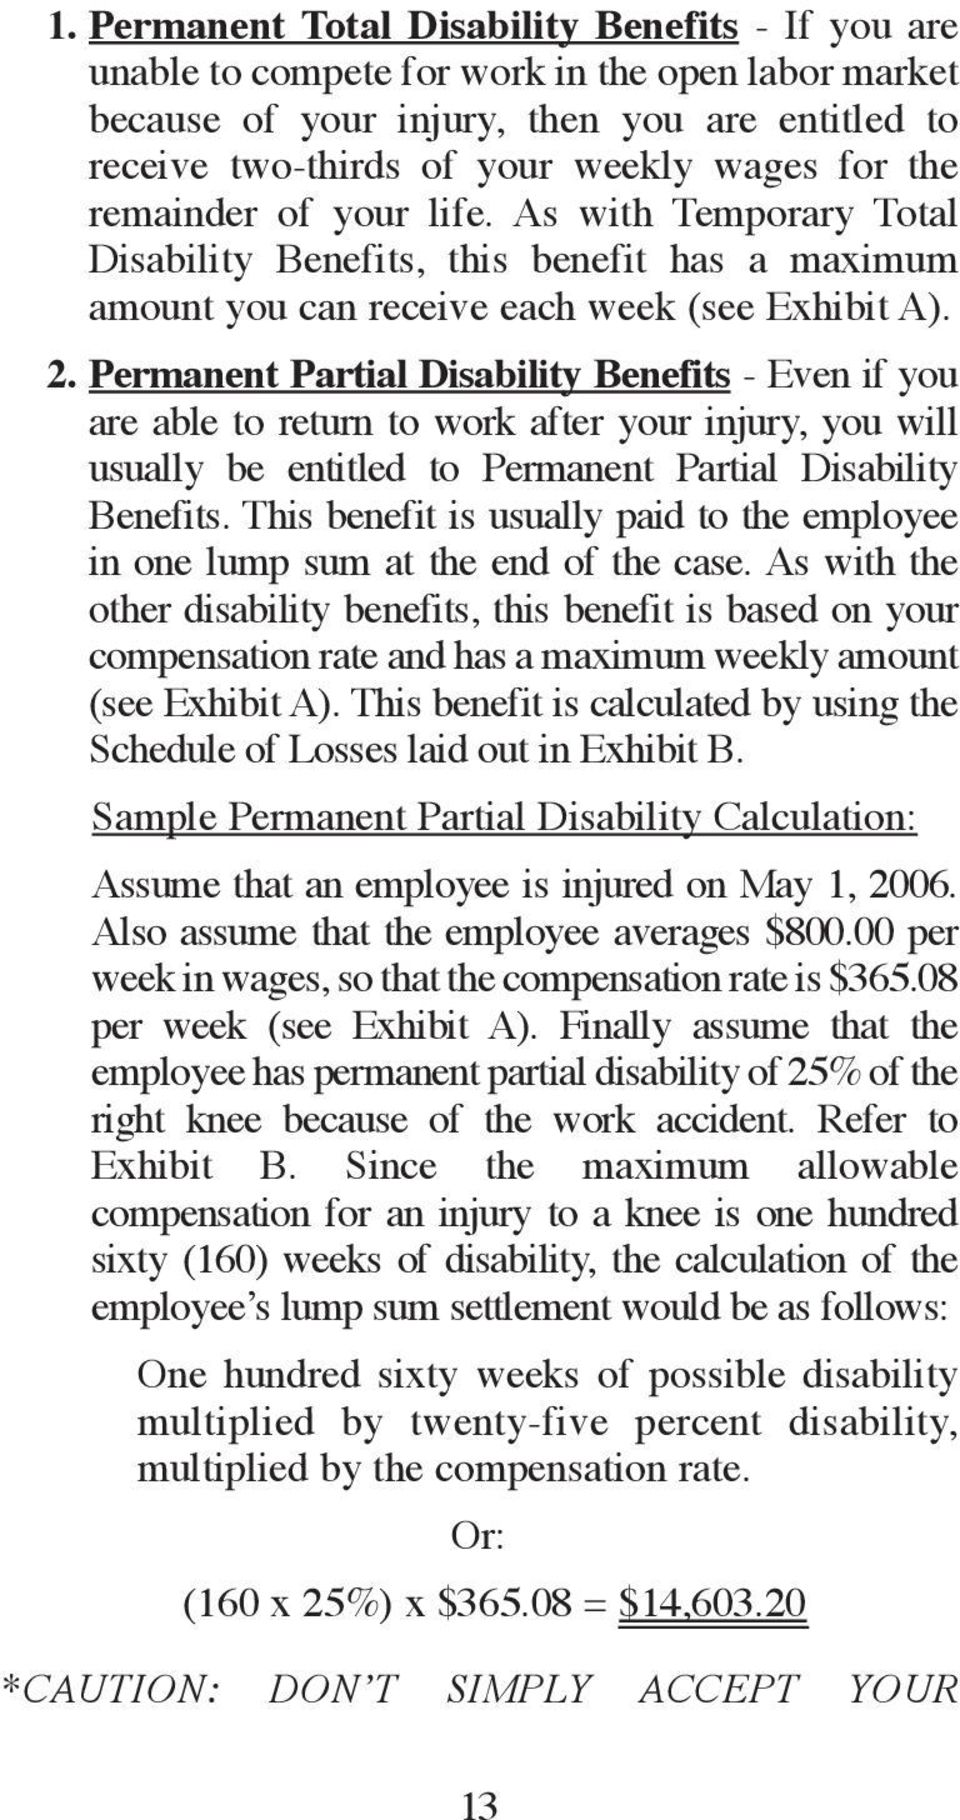 Permanent Partial Disability Benefits - Even if you are able to return to work after your injury, you will usually be entitled to Permanent Partial Disability Benefits.